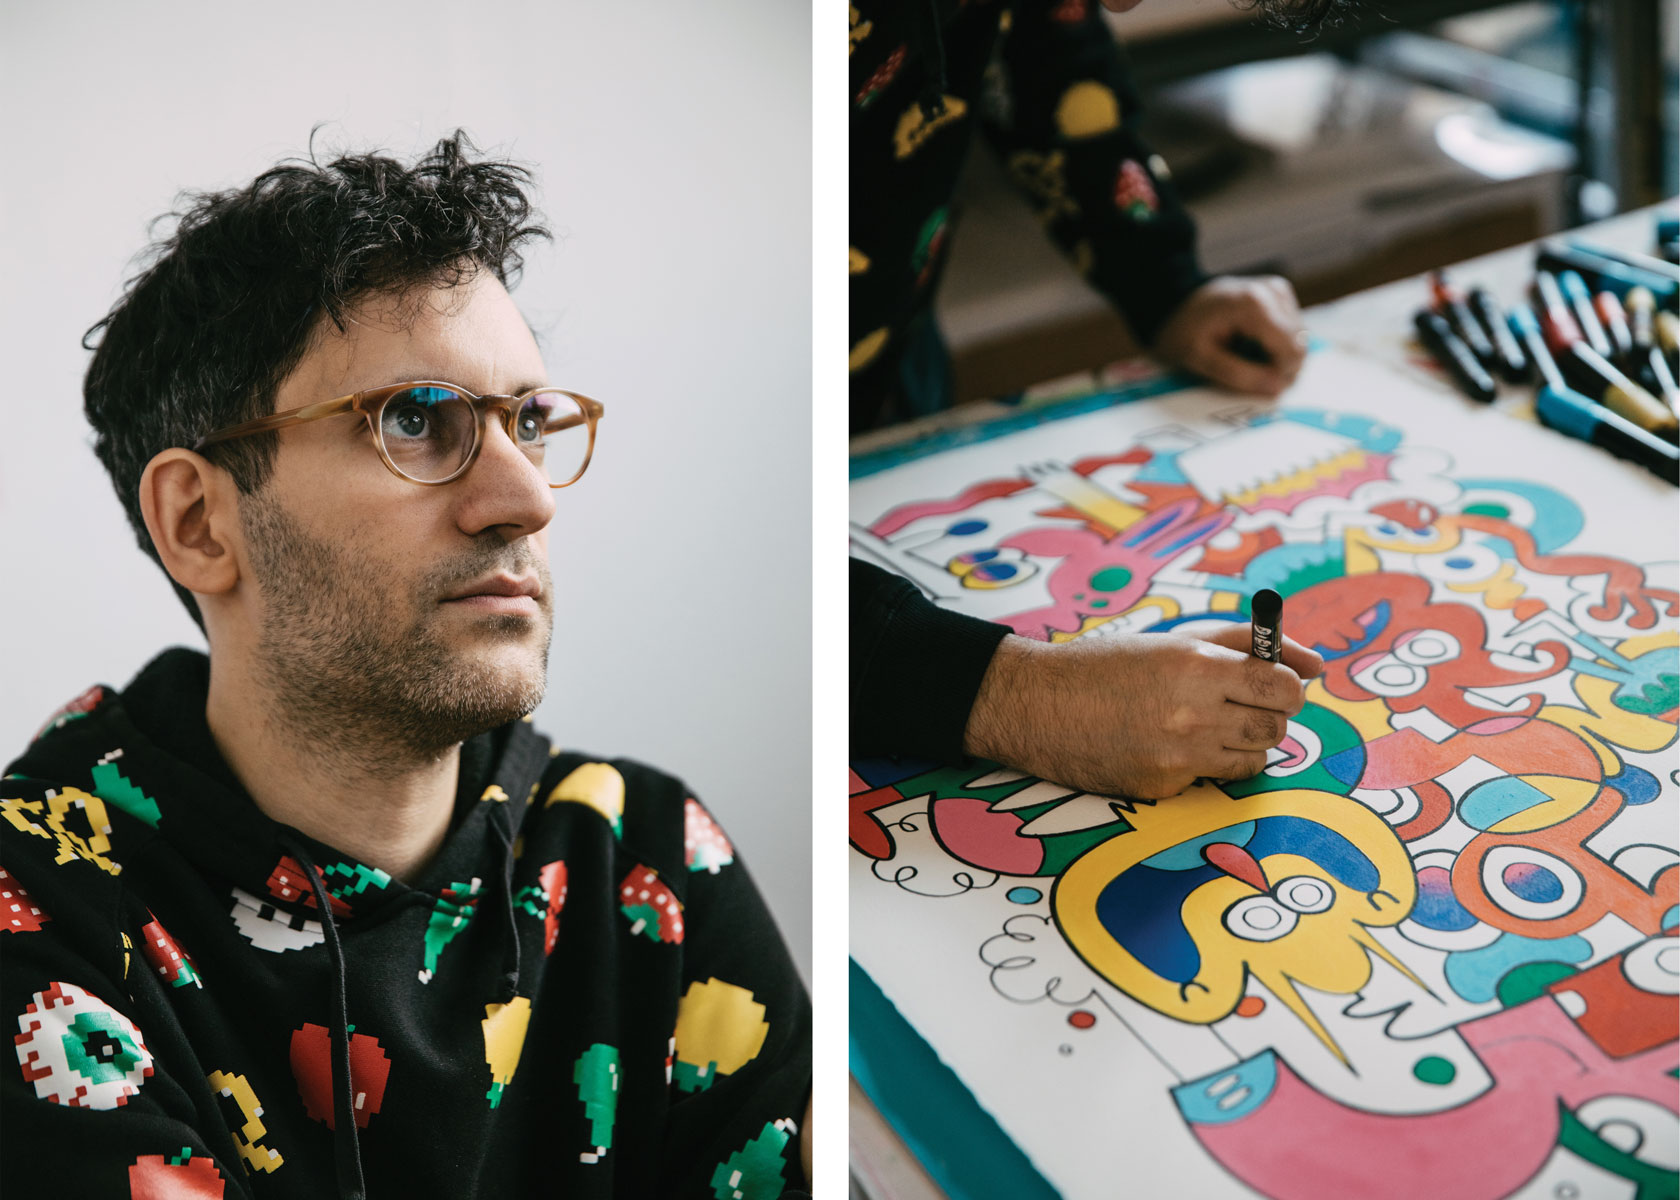 Burgerman dressed in an 8-bit style hoodie working on a colorful ink piece in his studio. Photographed by